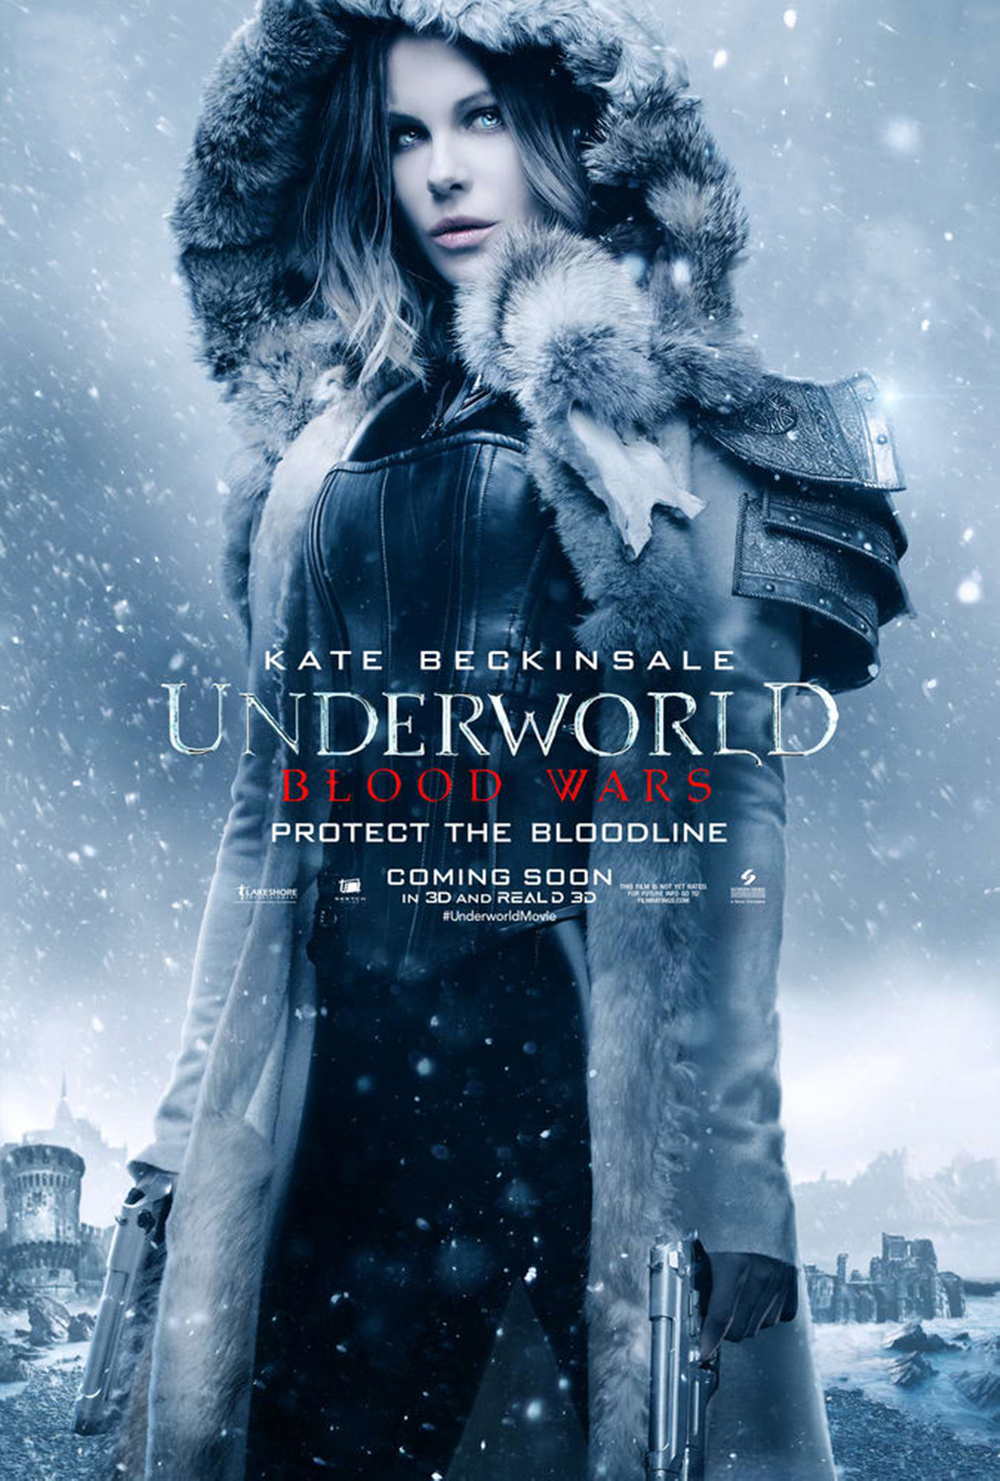 KateBeckinsale_Underworld.jpg